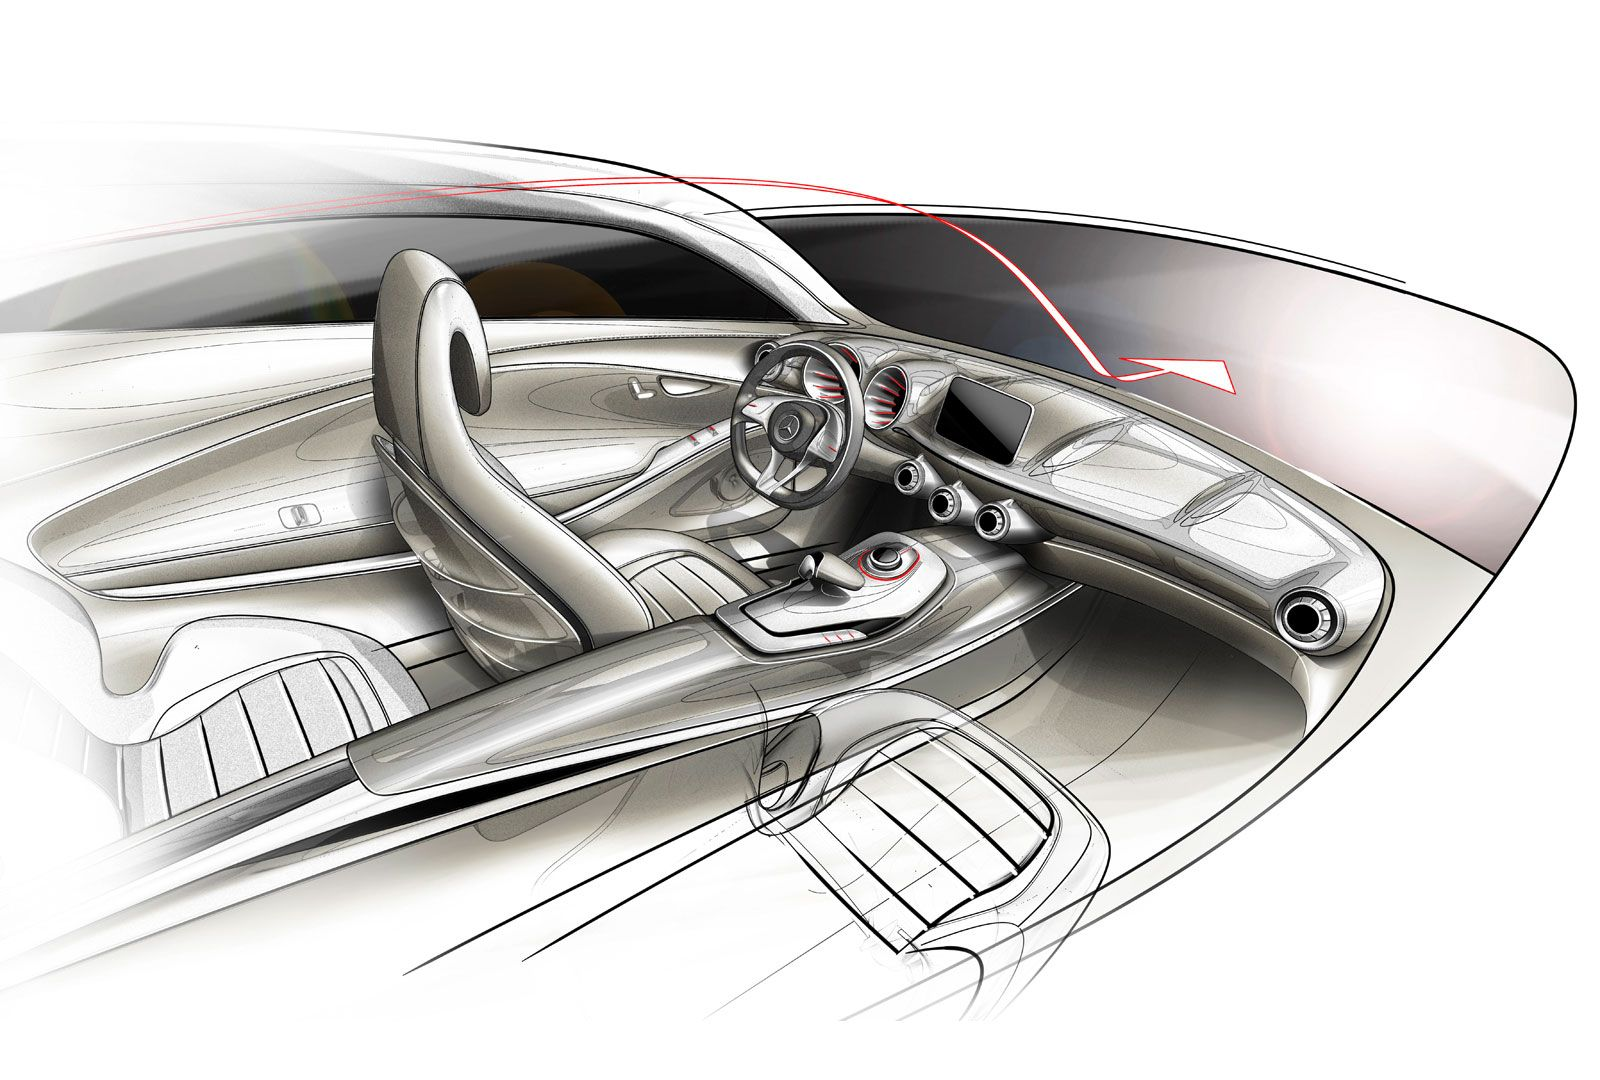 Mercedes Benz Concept A Class Interior Design Sketch 画像あり